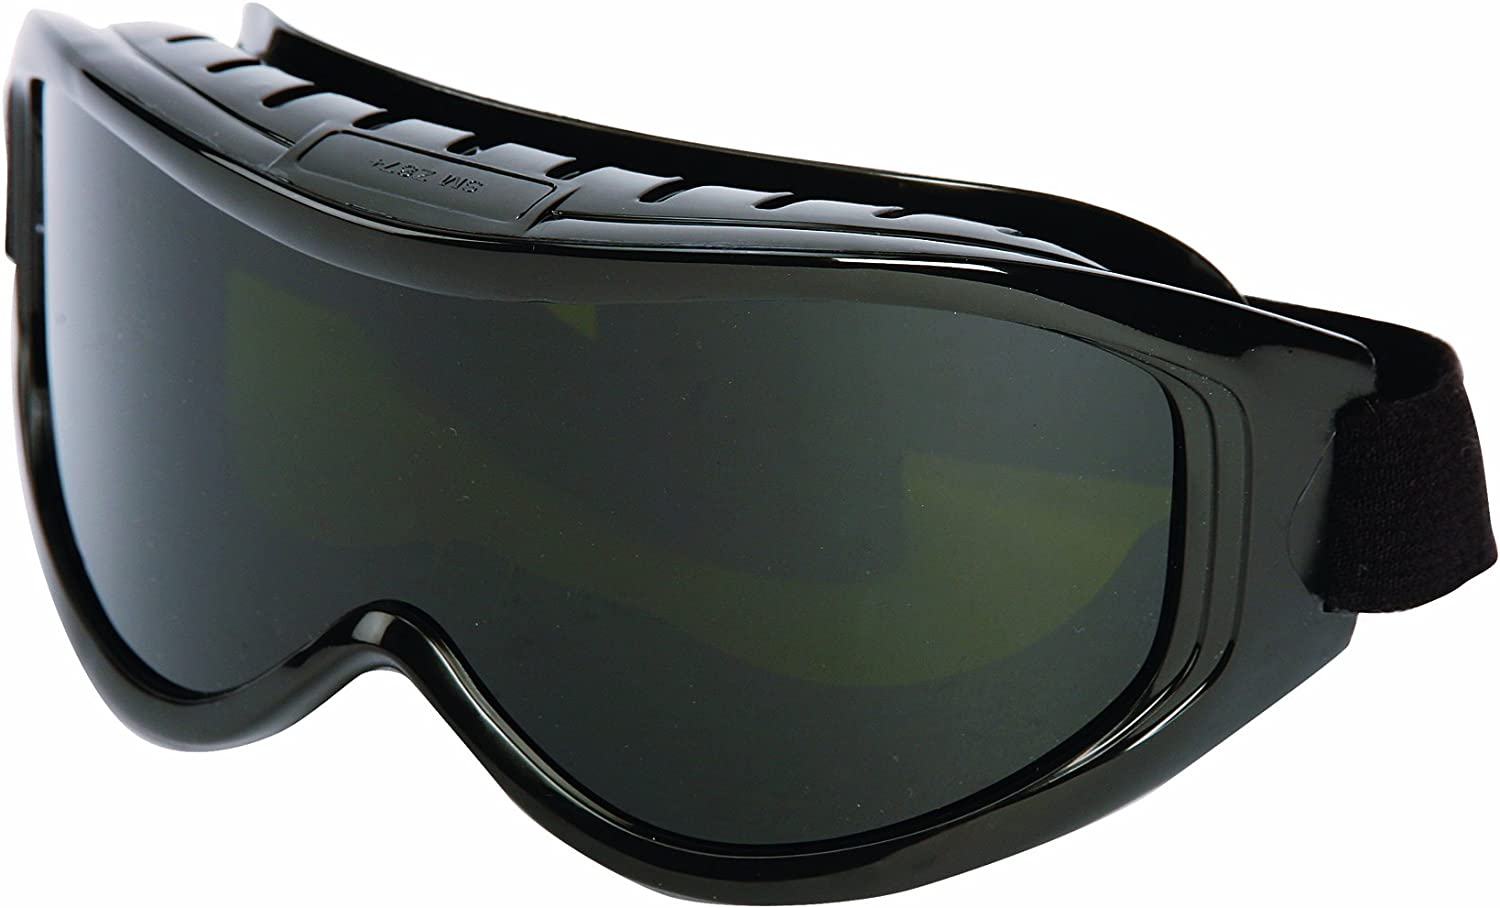 Sellstrom 80211 Odyssey II High Temperature Cutting Goggle, Shade 5 IR Lens, Black Indirect Vent Goggle Body, Packaged in a Point of Sale Clam